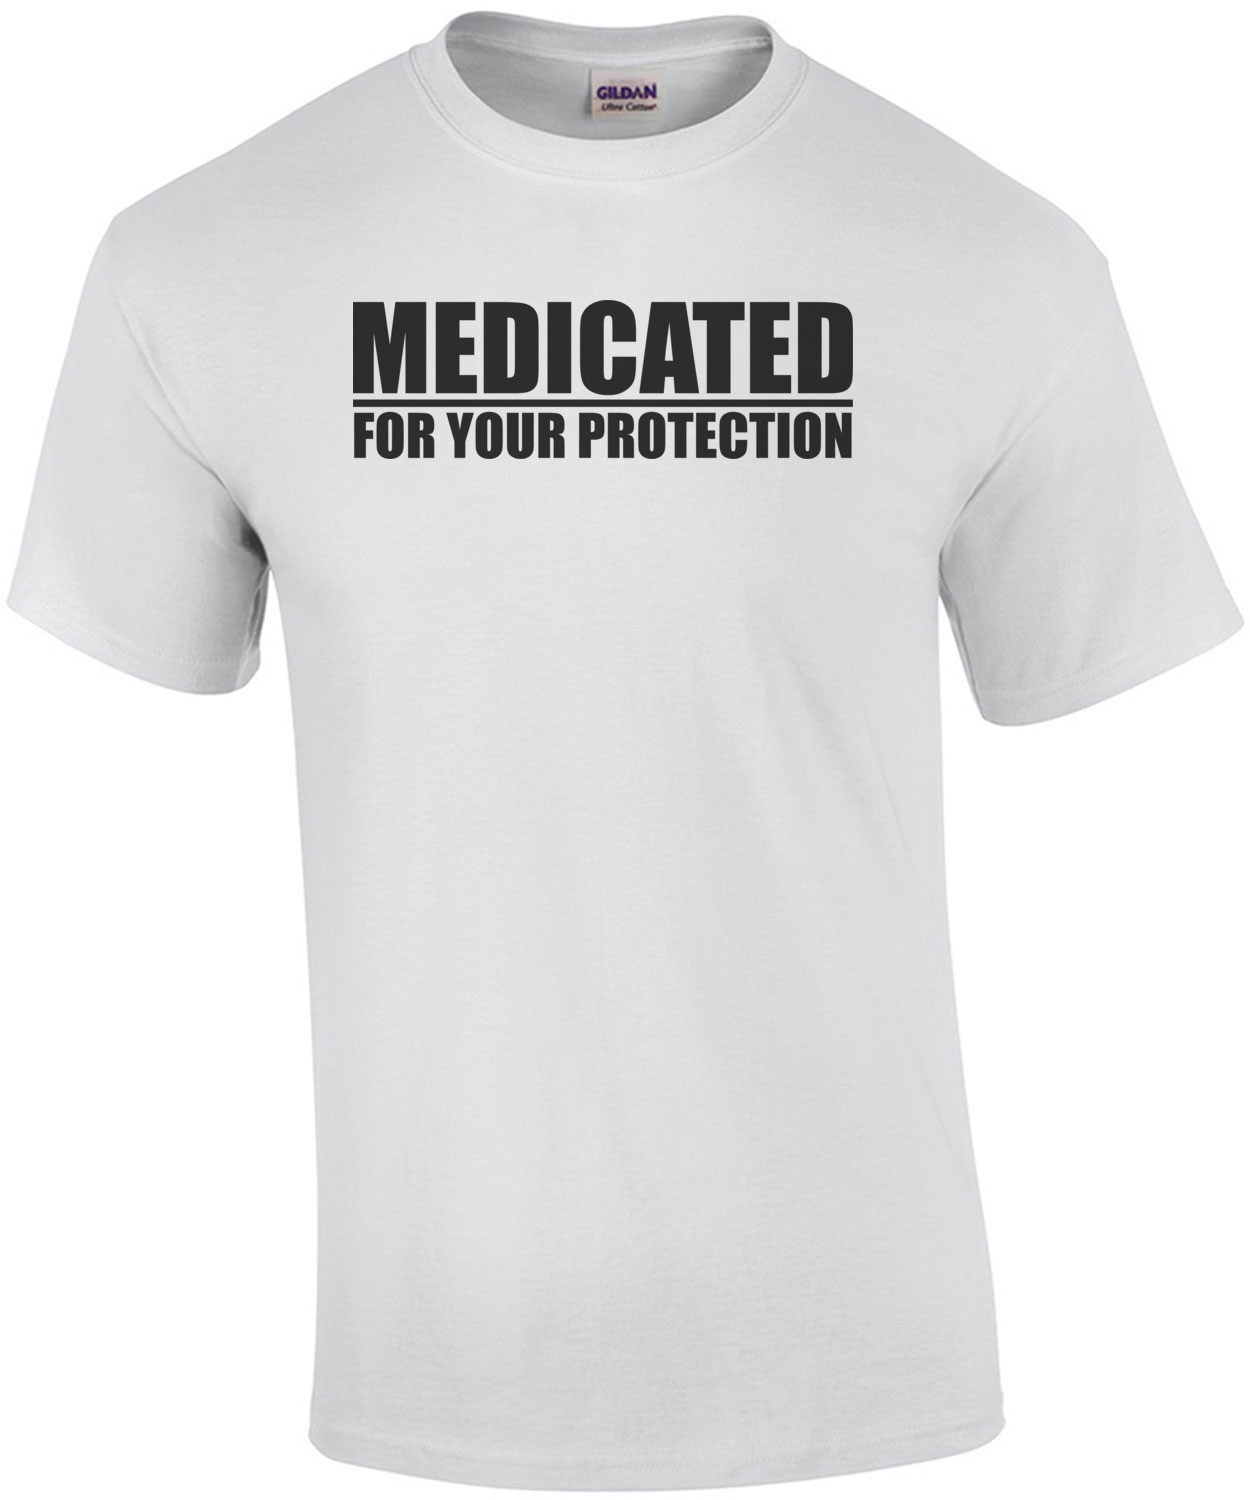 Medicated - For Your Protection Shirt